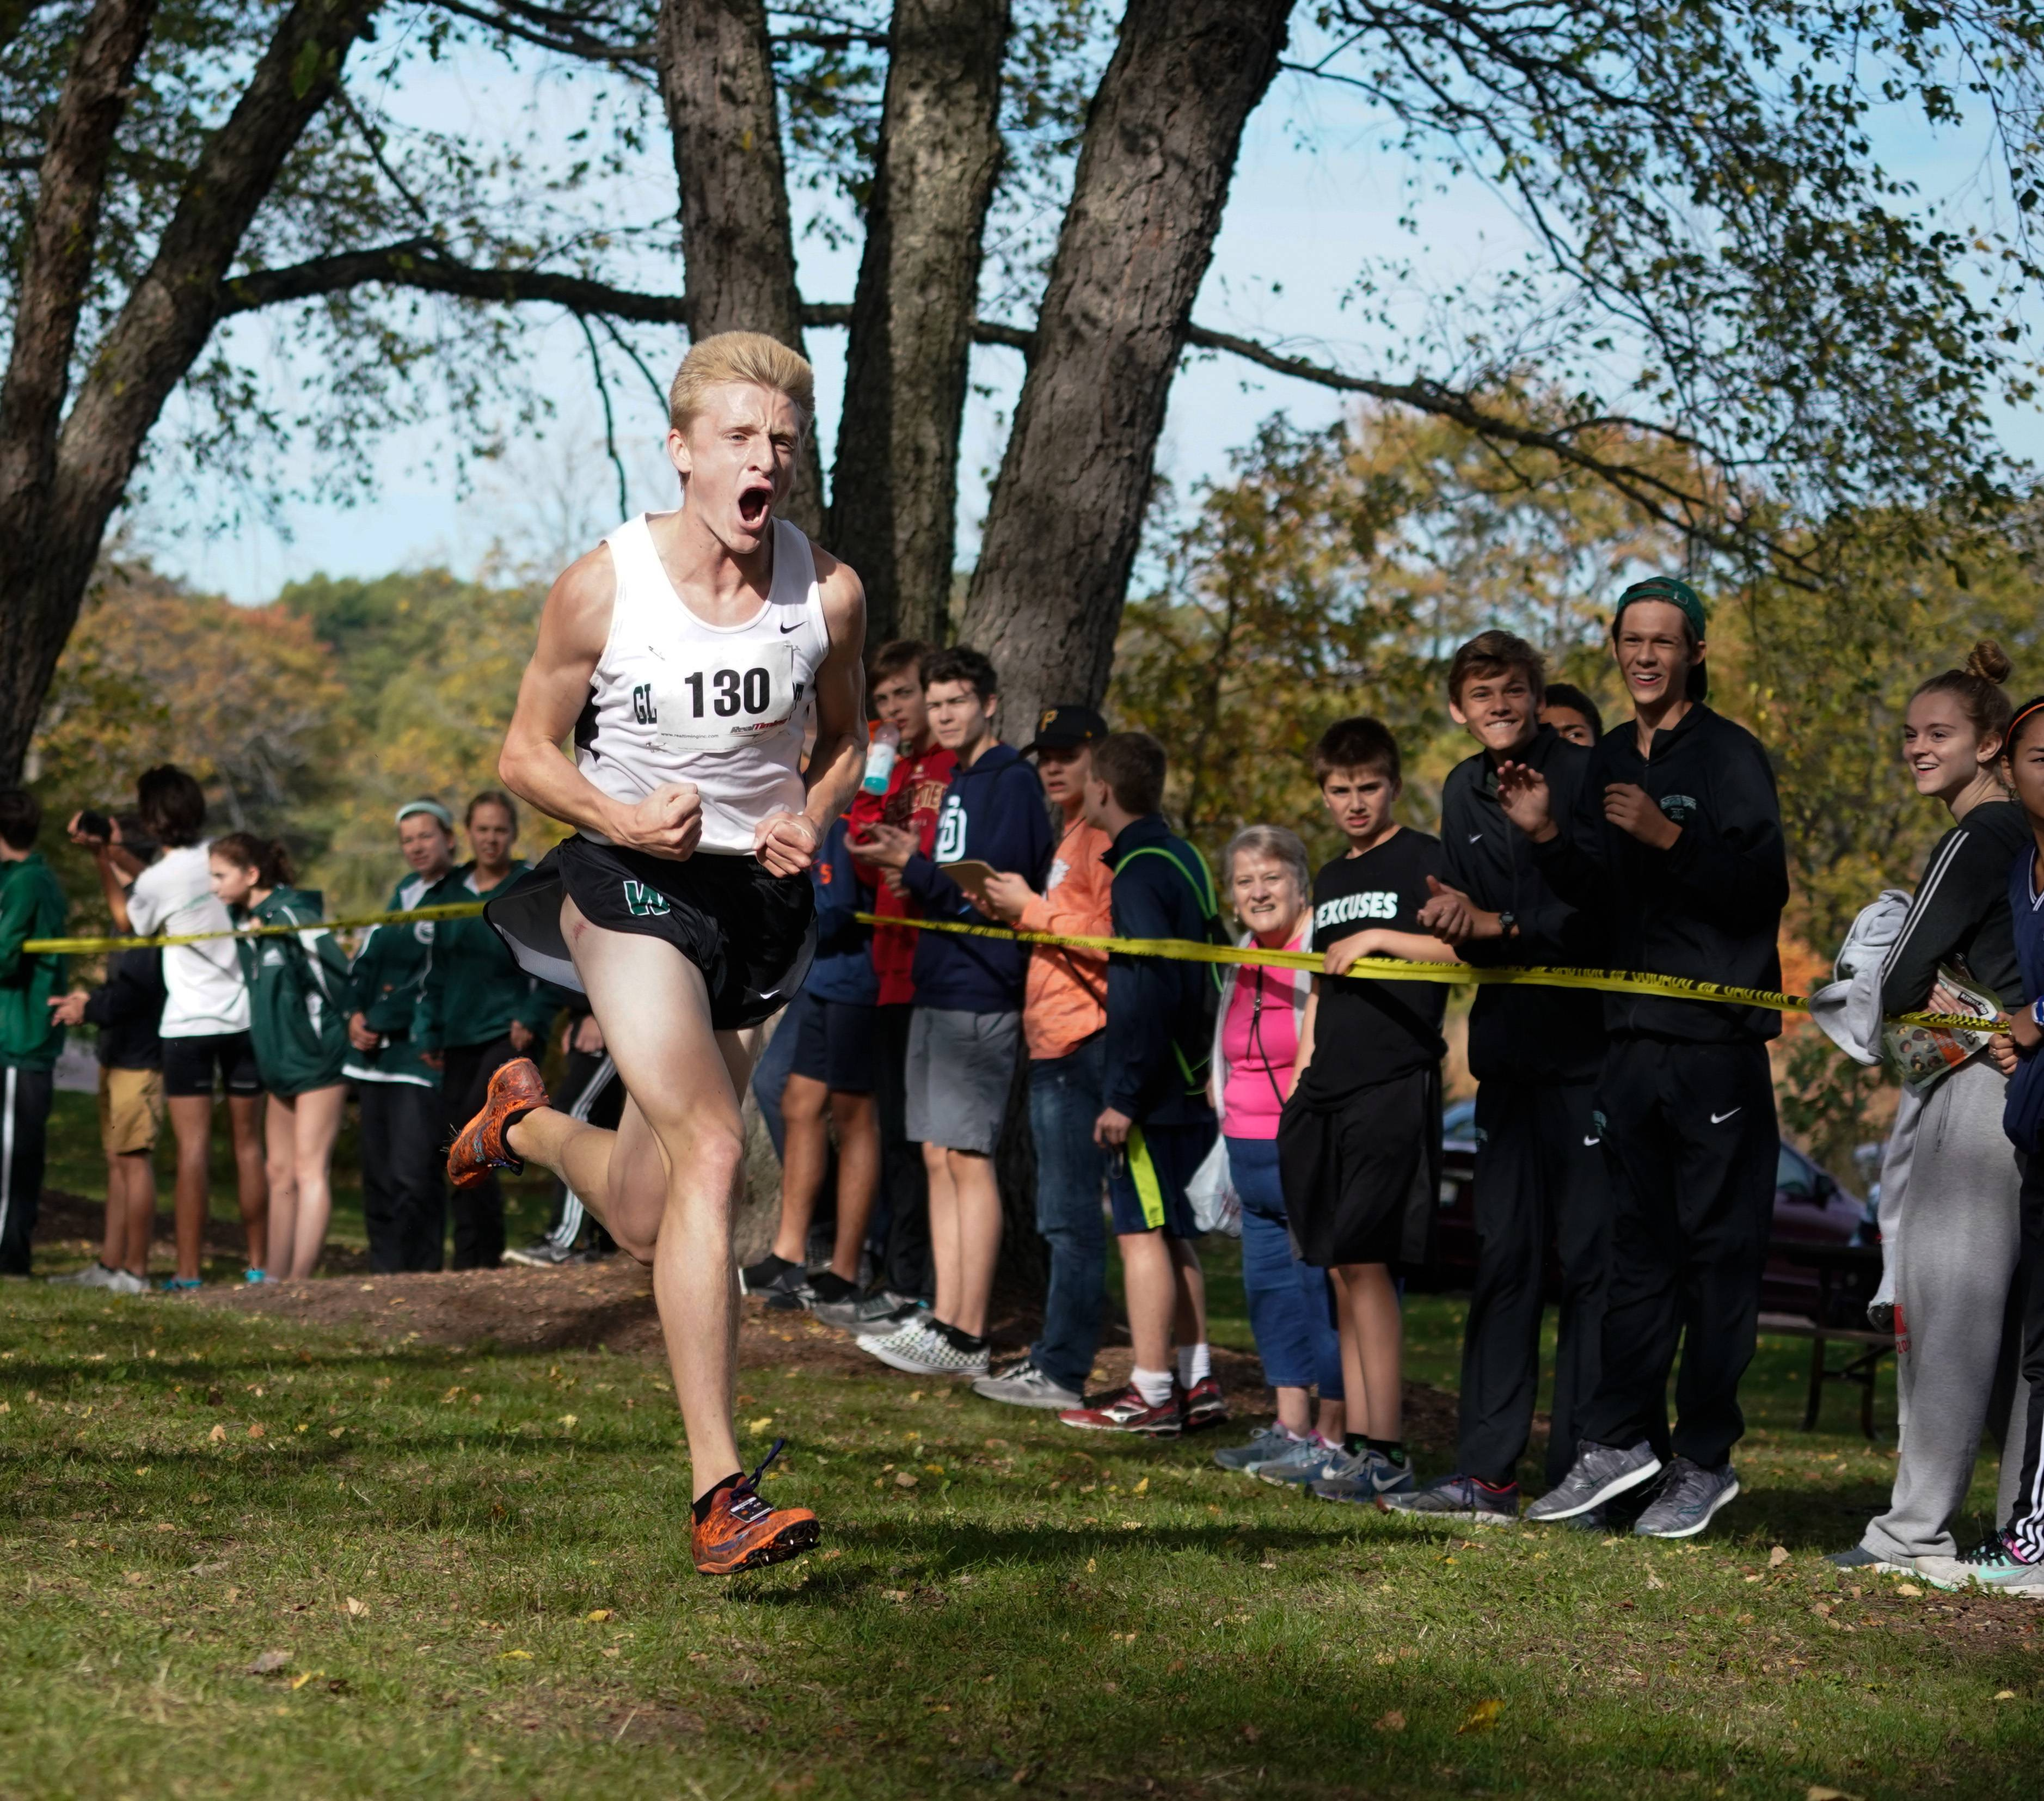 Glenbard West's Rory Cavan celebrates as he approaches the finish line first in the Boys Class 3A Wheaton North cross country regional at St. James Farm Forest Preserve in Warrenville, IL on Saturday, October 21, 2017